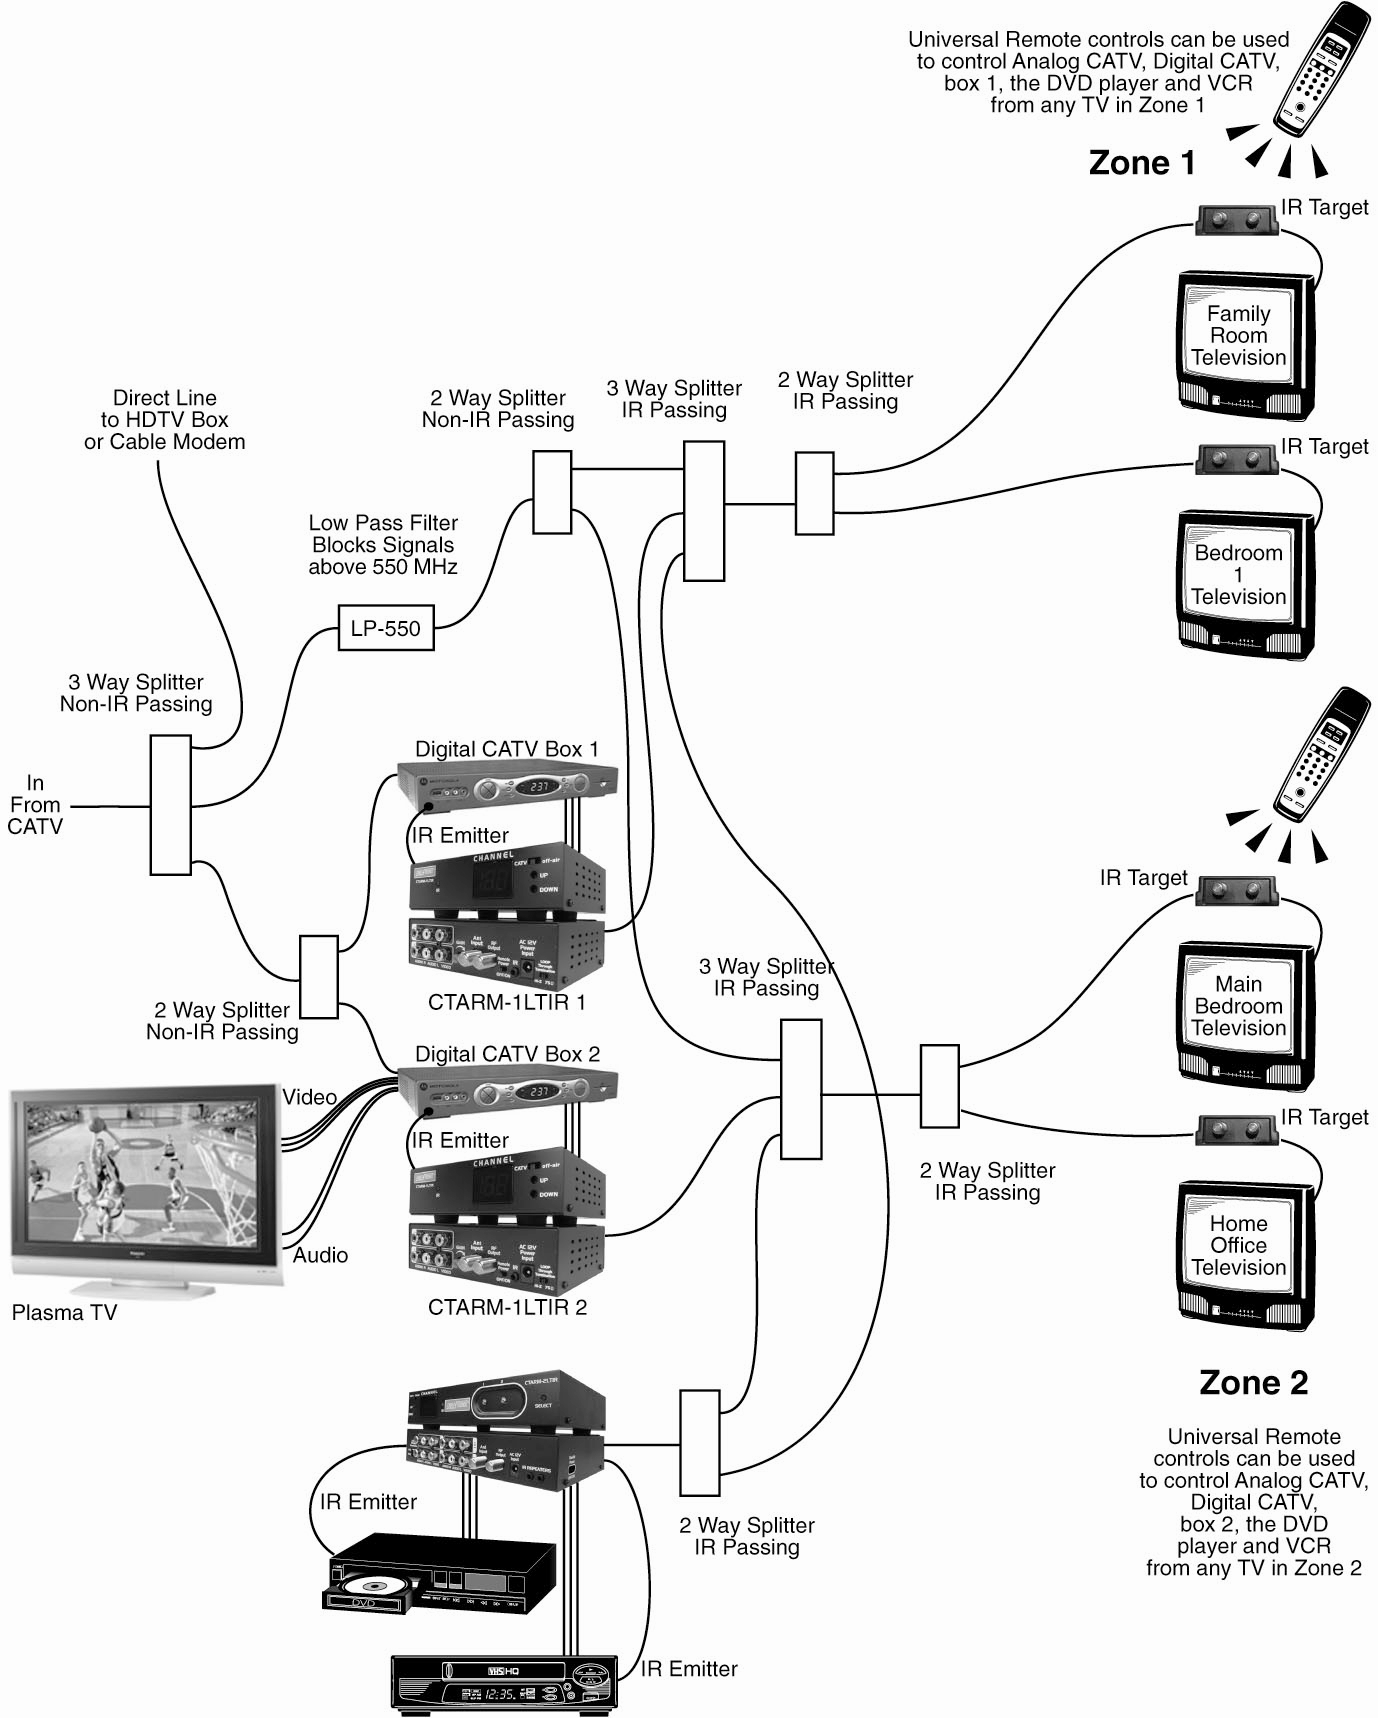 Dish Network Wiring Diagram 722 : 35 Dish Network Vip222k